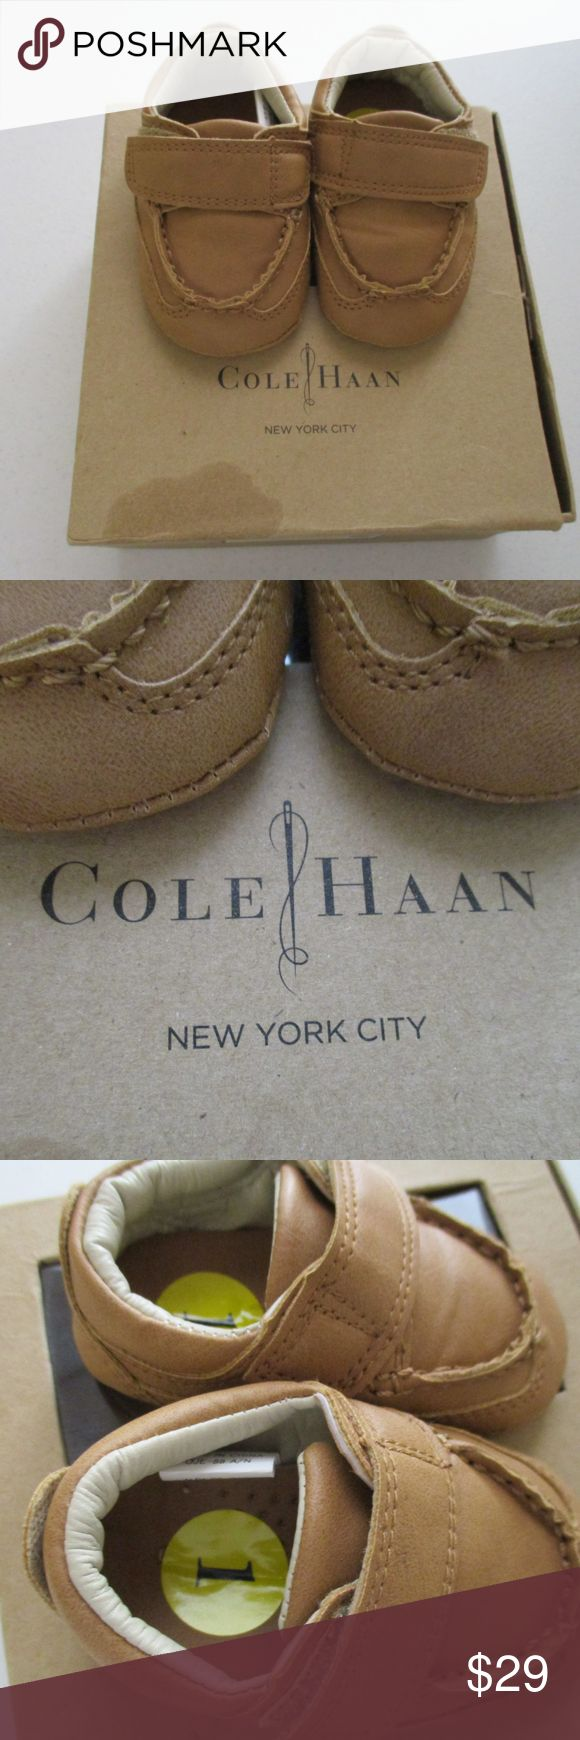 Cole Haan Baby Mini Johnny Shoes sz 1 NIB New Cole Haan infant /baby oxford driver Moccasins iin size 1 New in Box  Man made material So cute! Cole Haan Shoes Moccasins